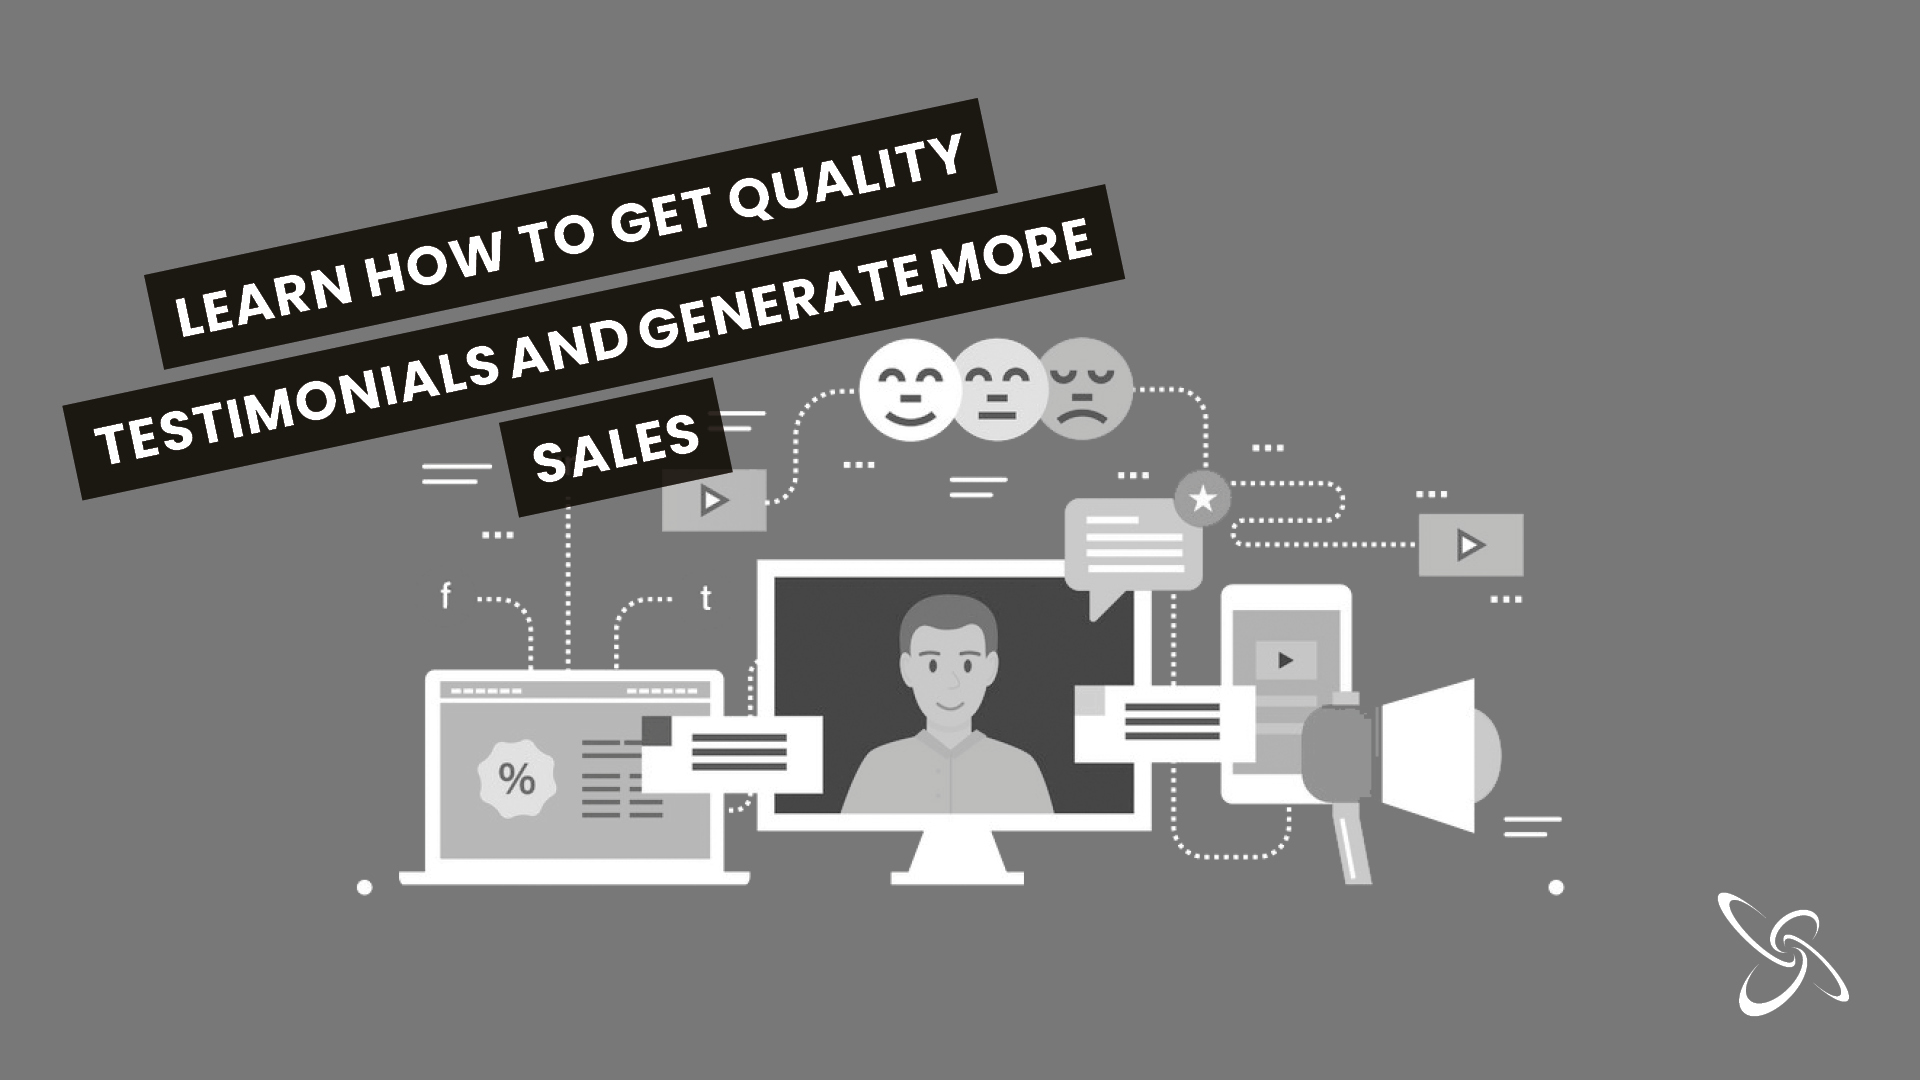 Learn how to get quality testimonials and generate more sales